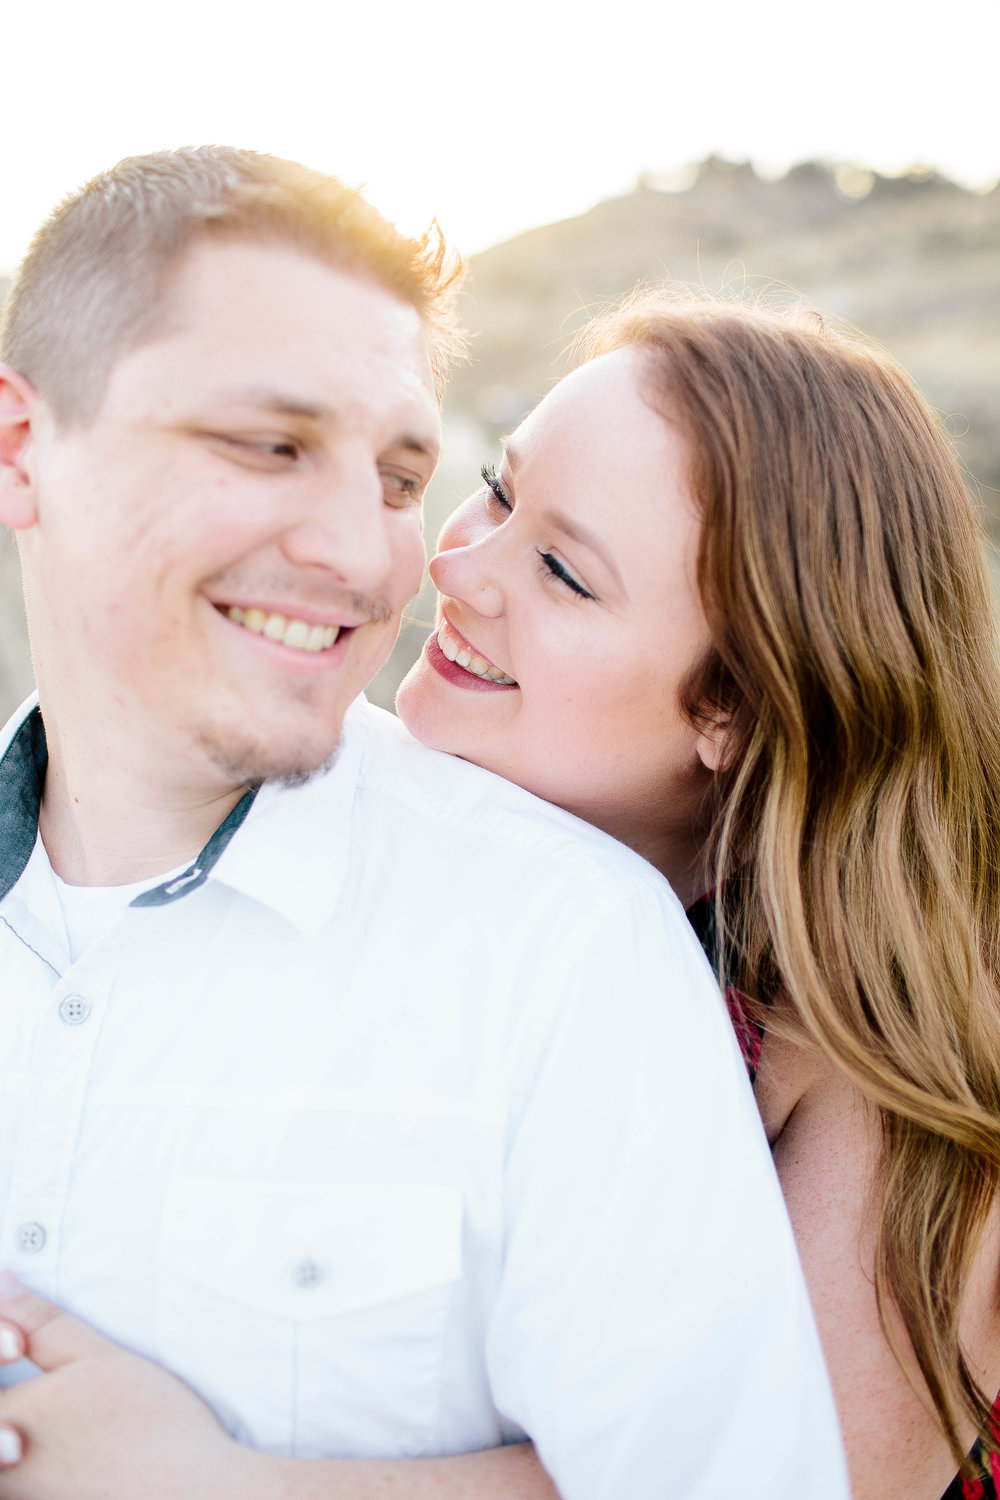 Boise Engagement Session- Boise Wedding Photographer- Idaho Engagement Session- Idaho Wedding Photographer